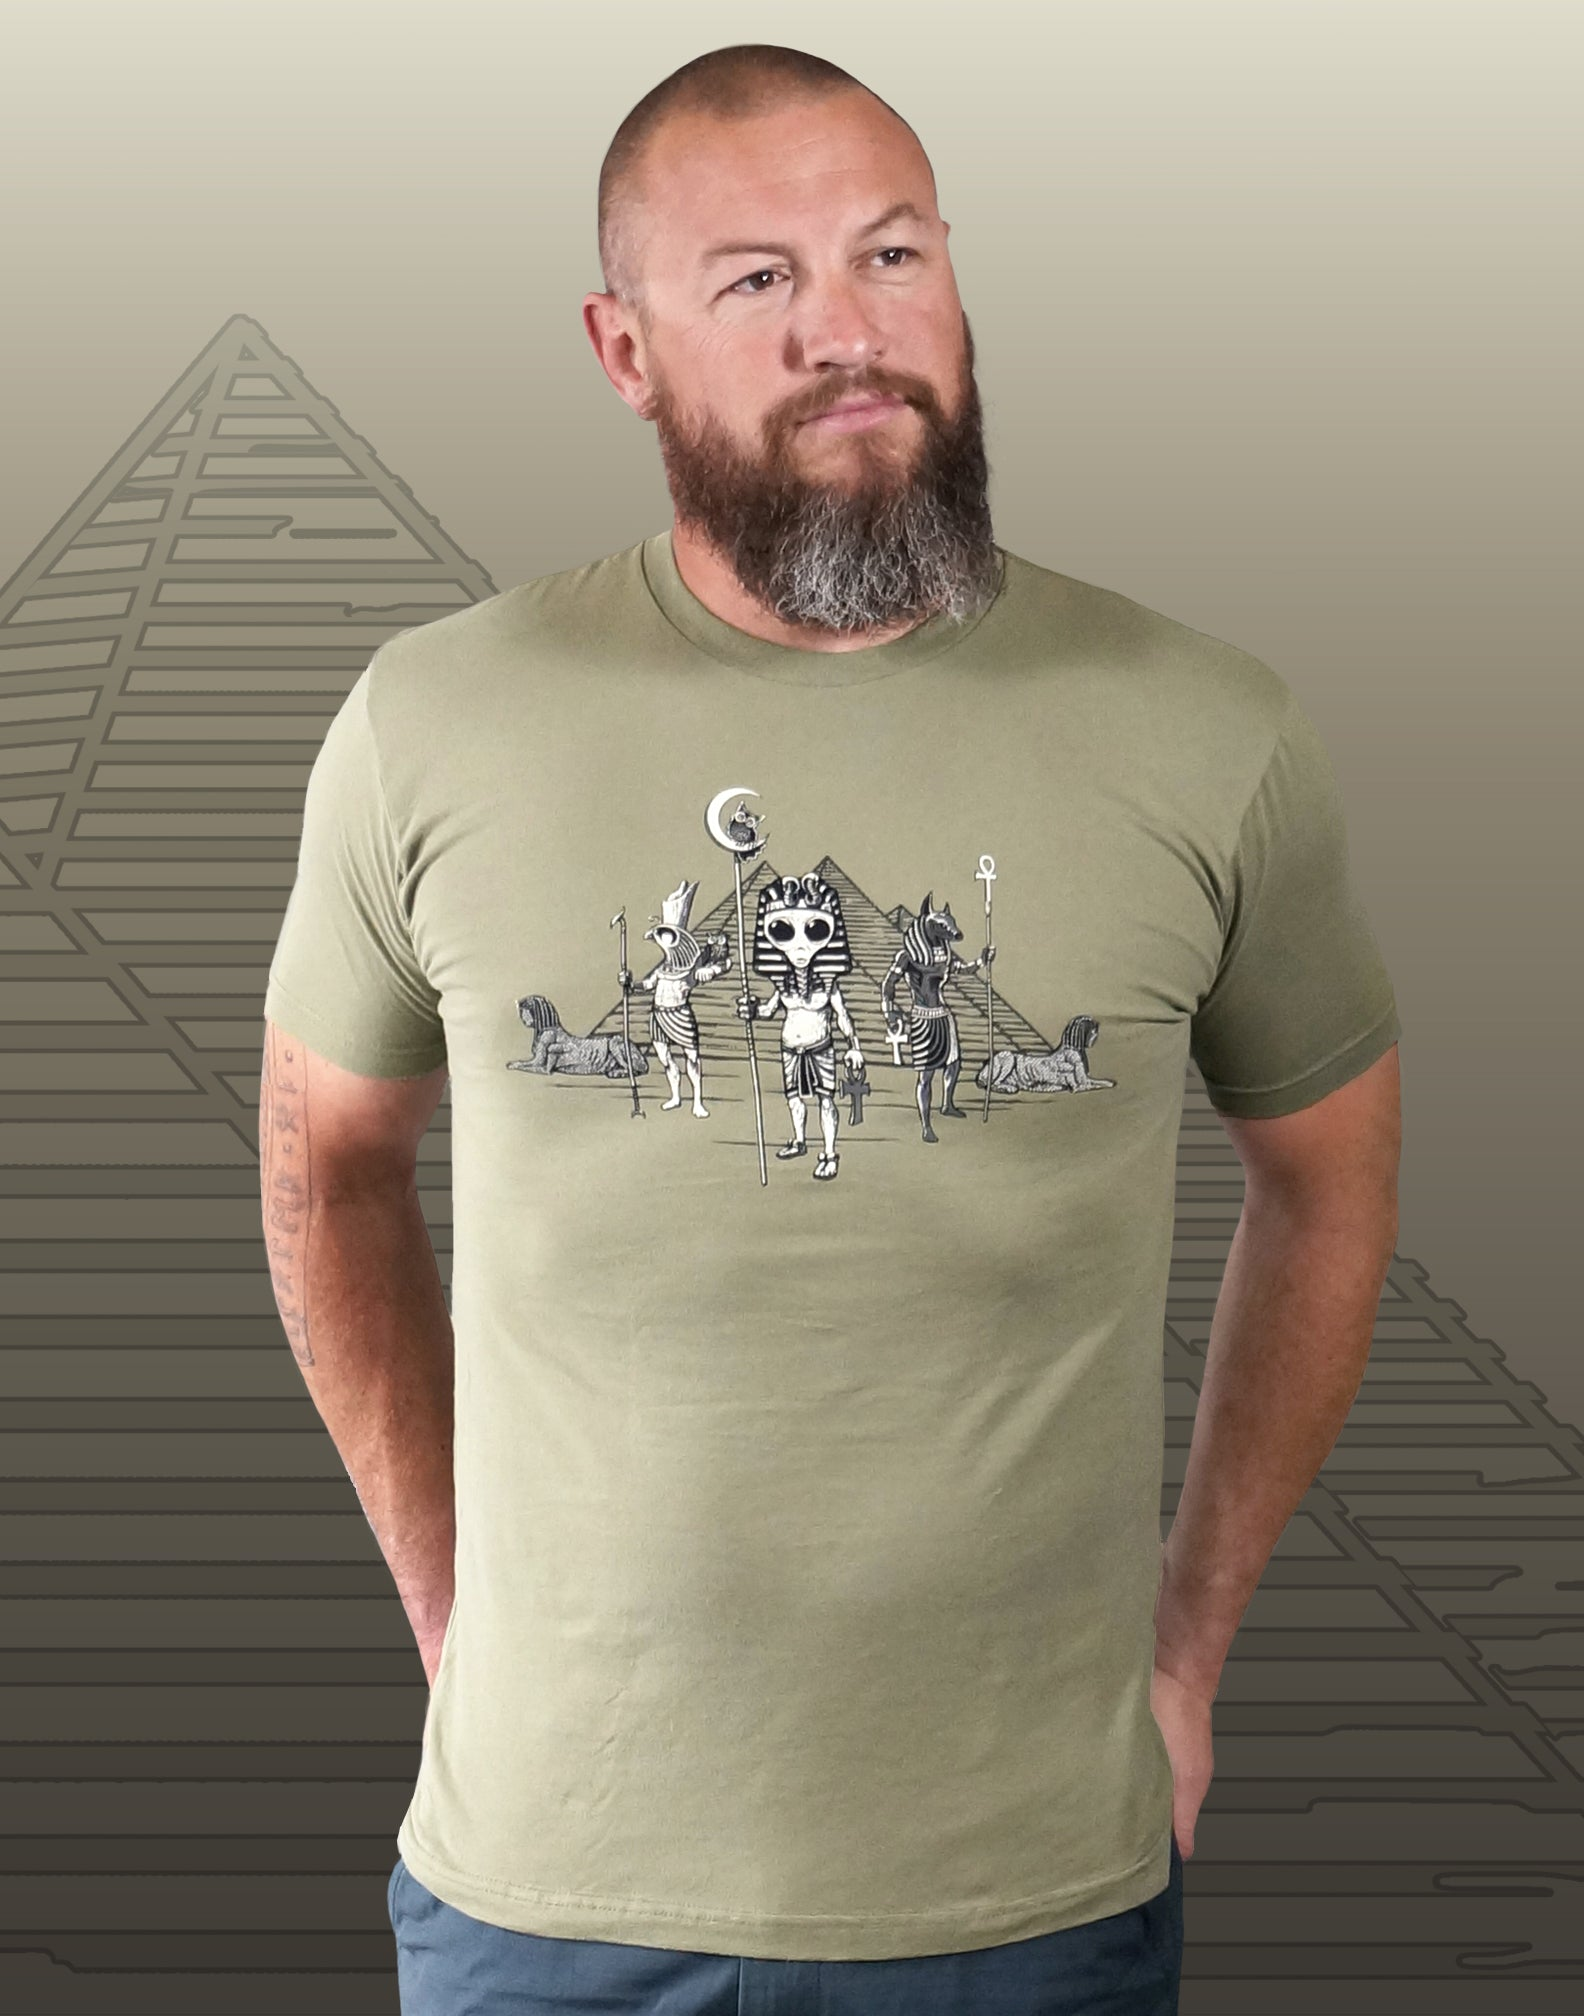 Egyptian Alien Men's Fitted Crew Neck